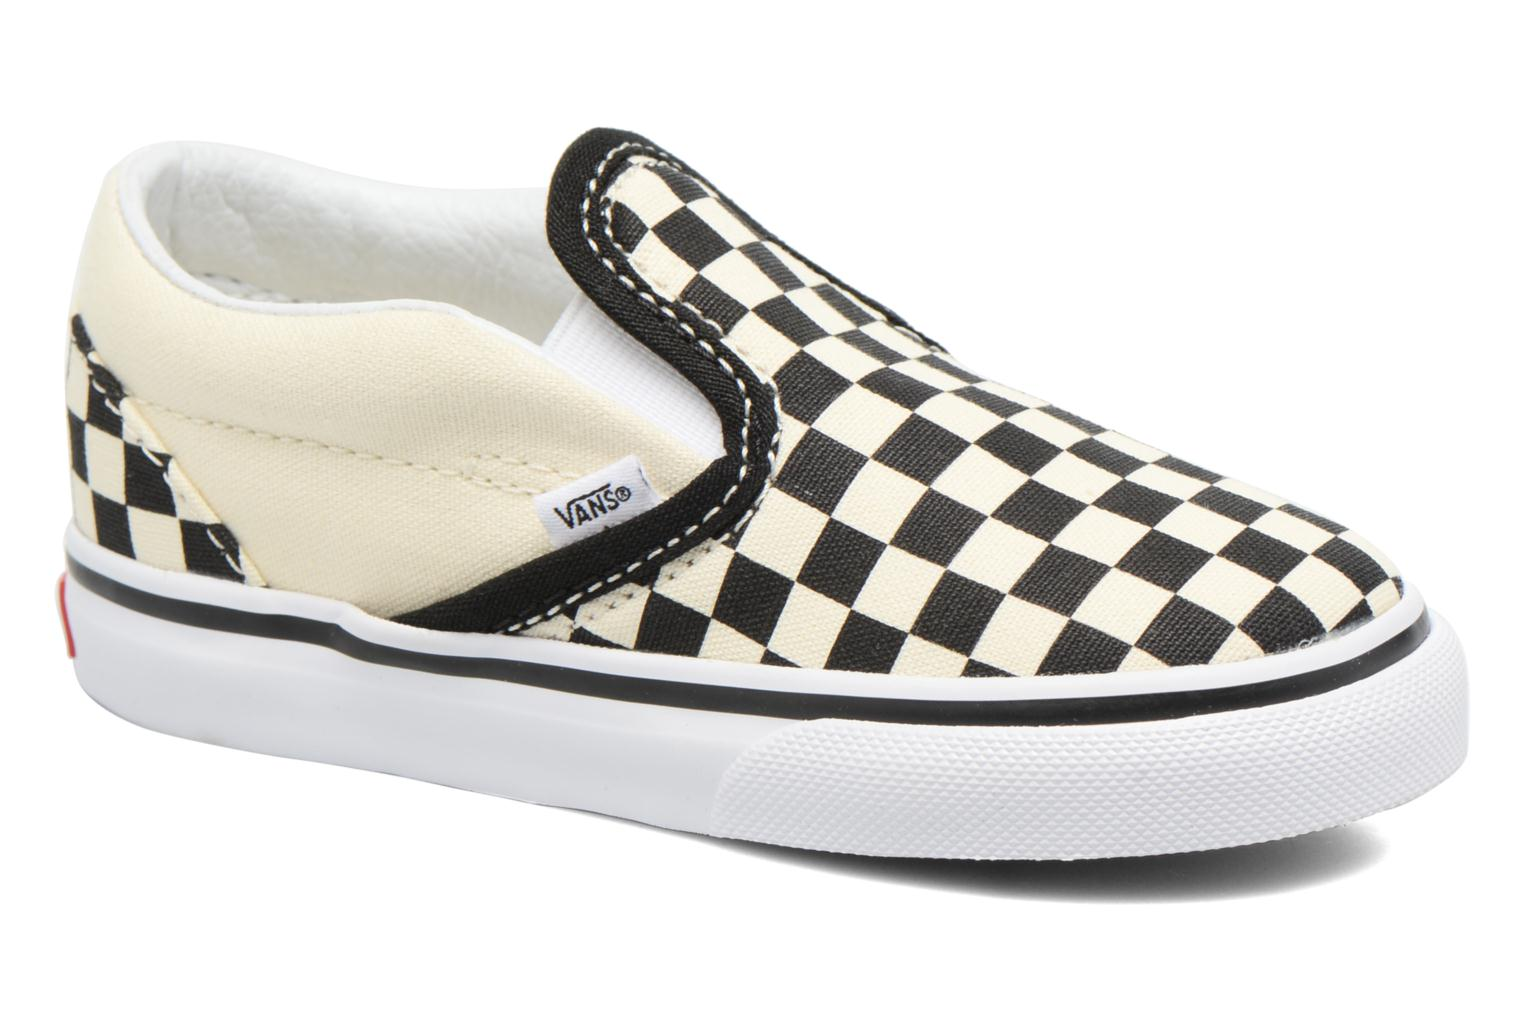 Classic Slip-on BB Blk&WhtChckerboard/Wht